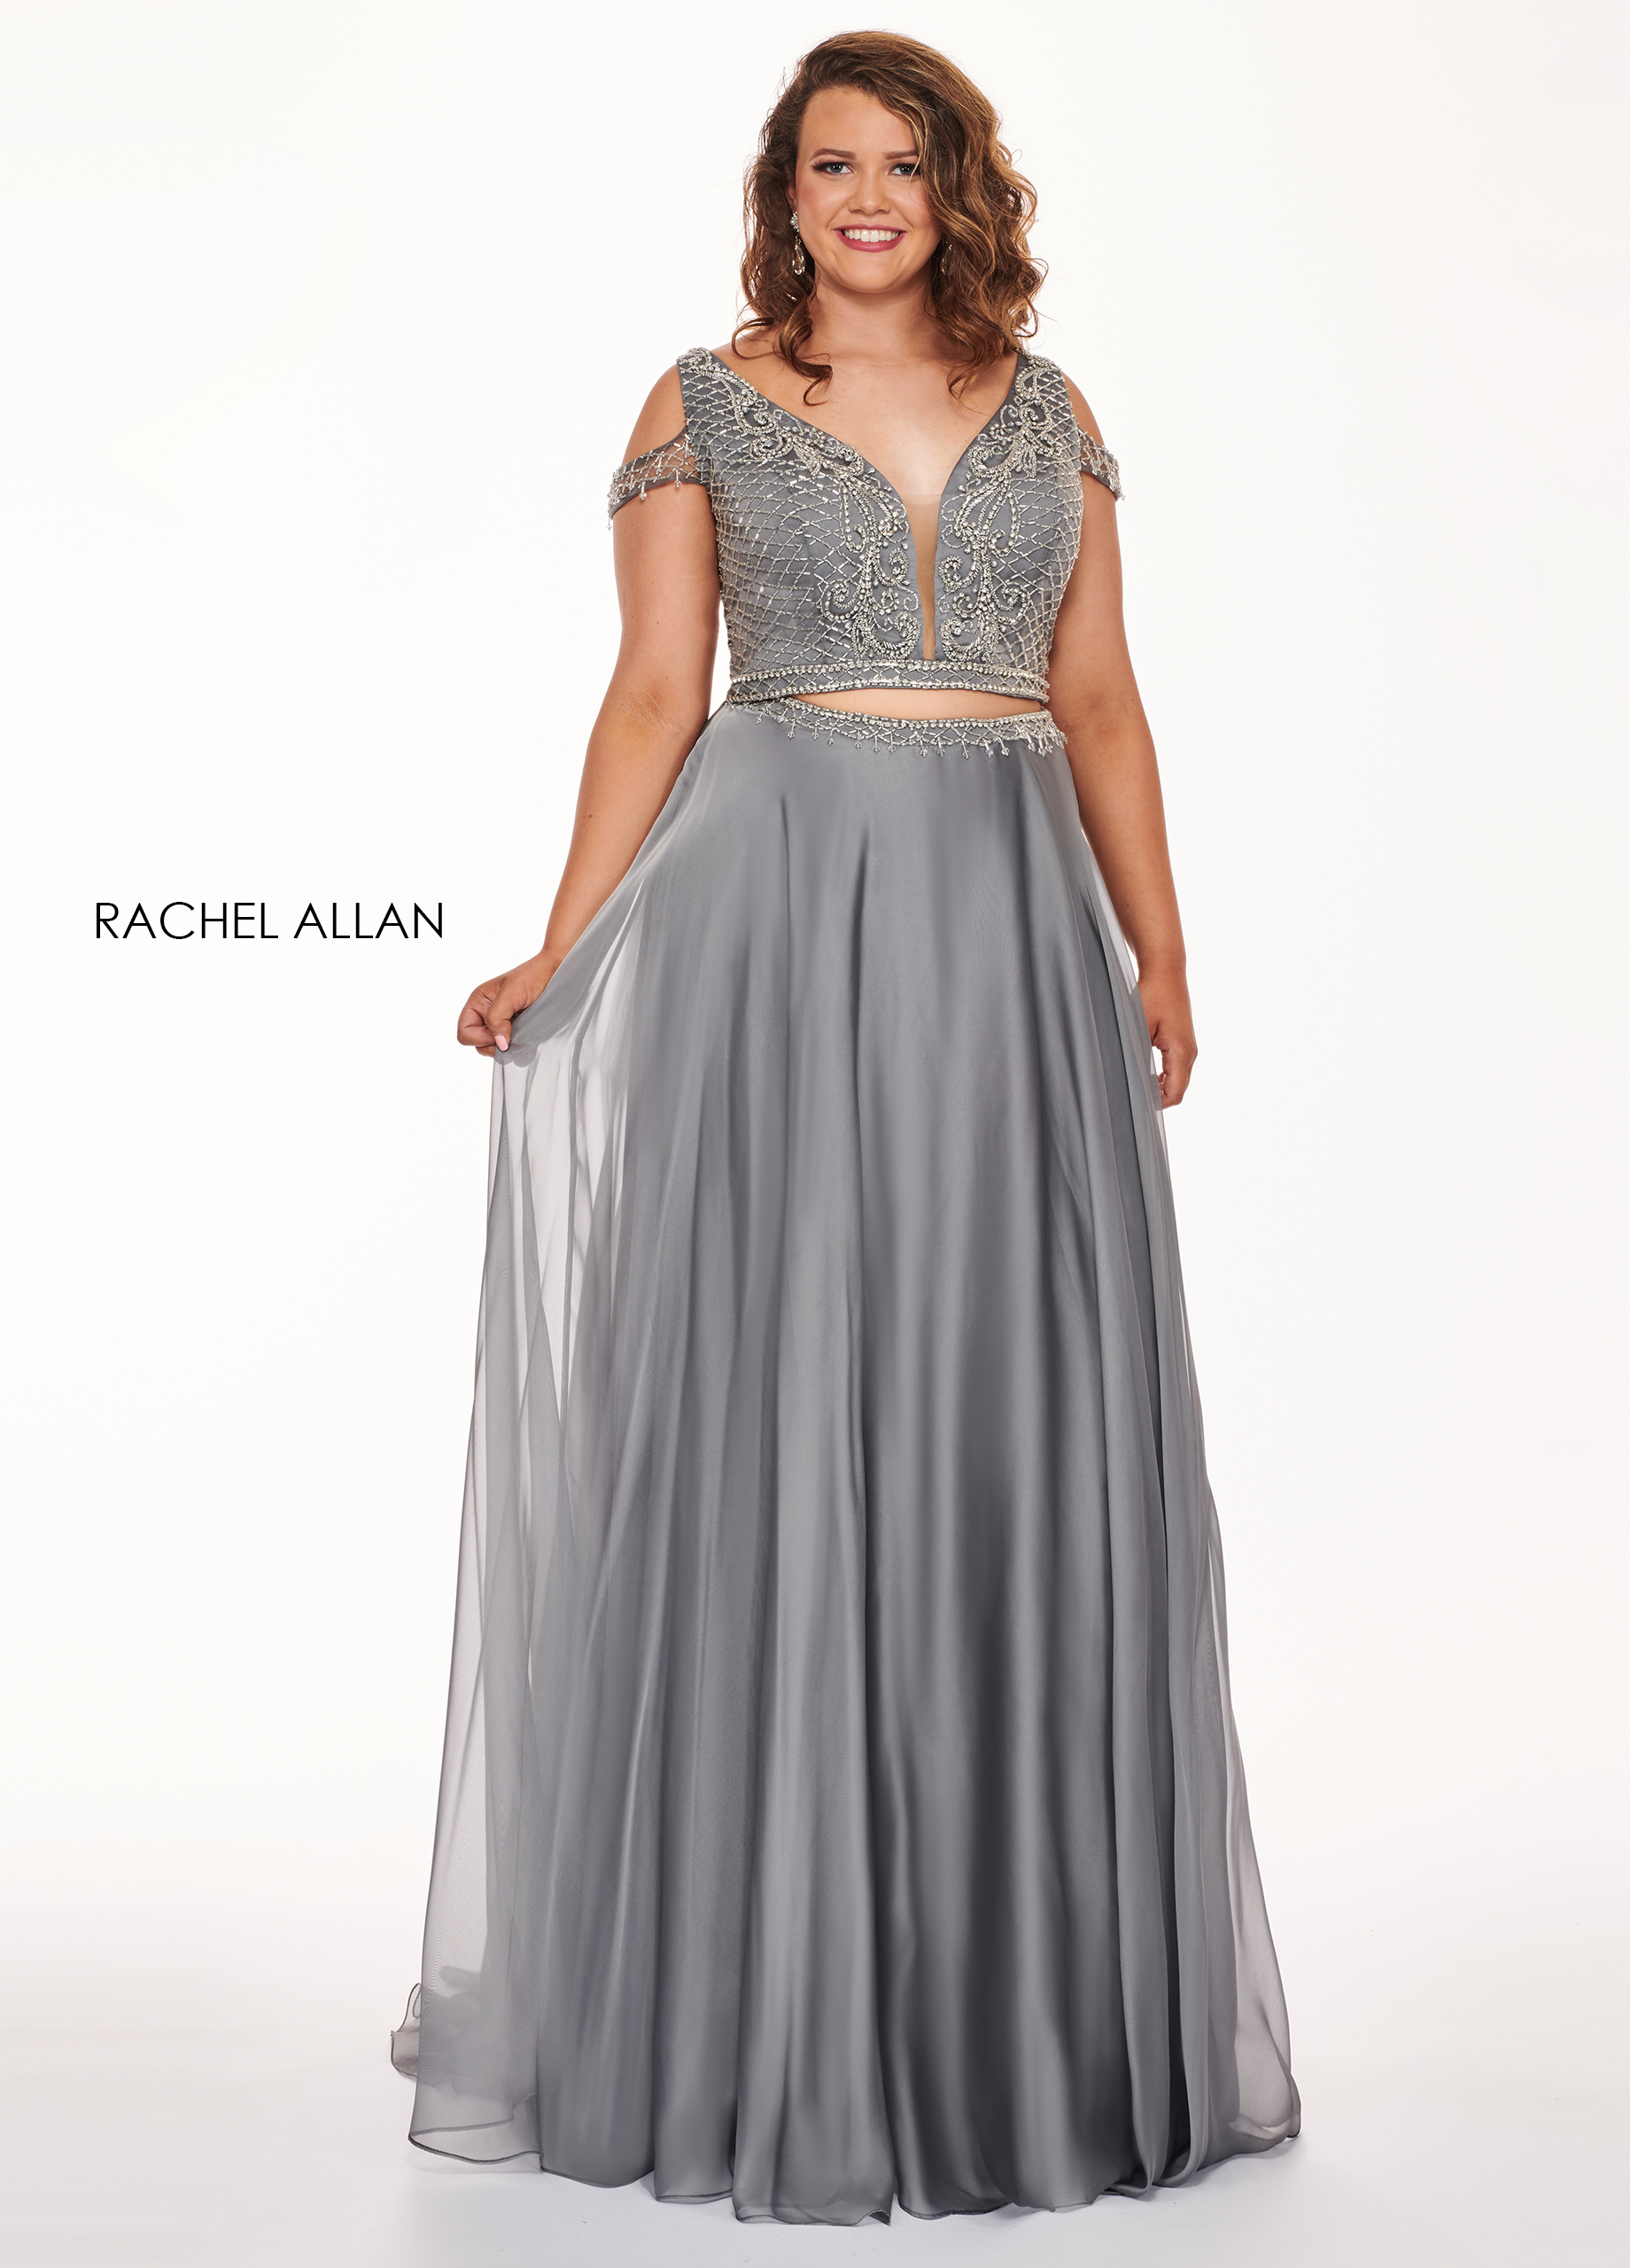 V-Neck Two-Piece Curves Dresses in Grey Color | Style - 6693